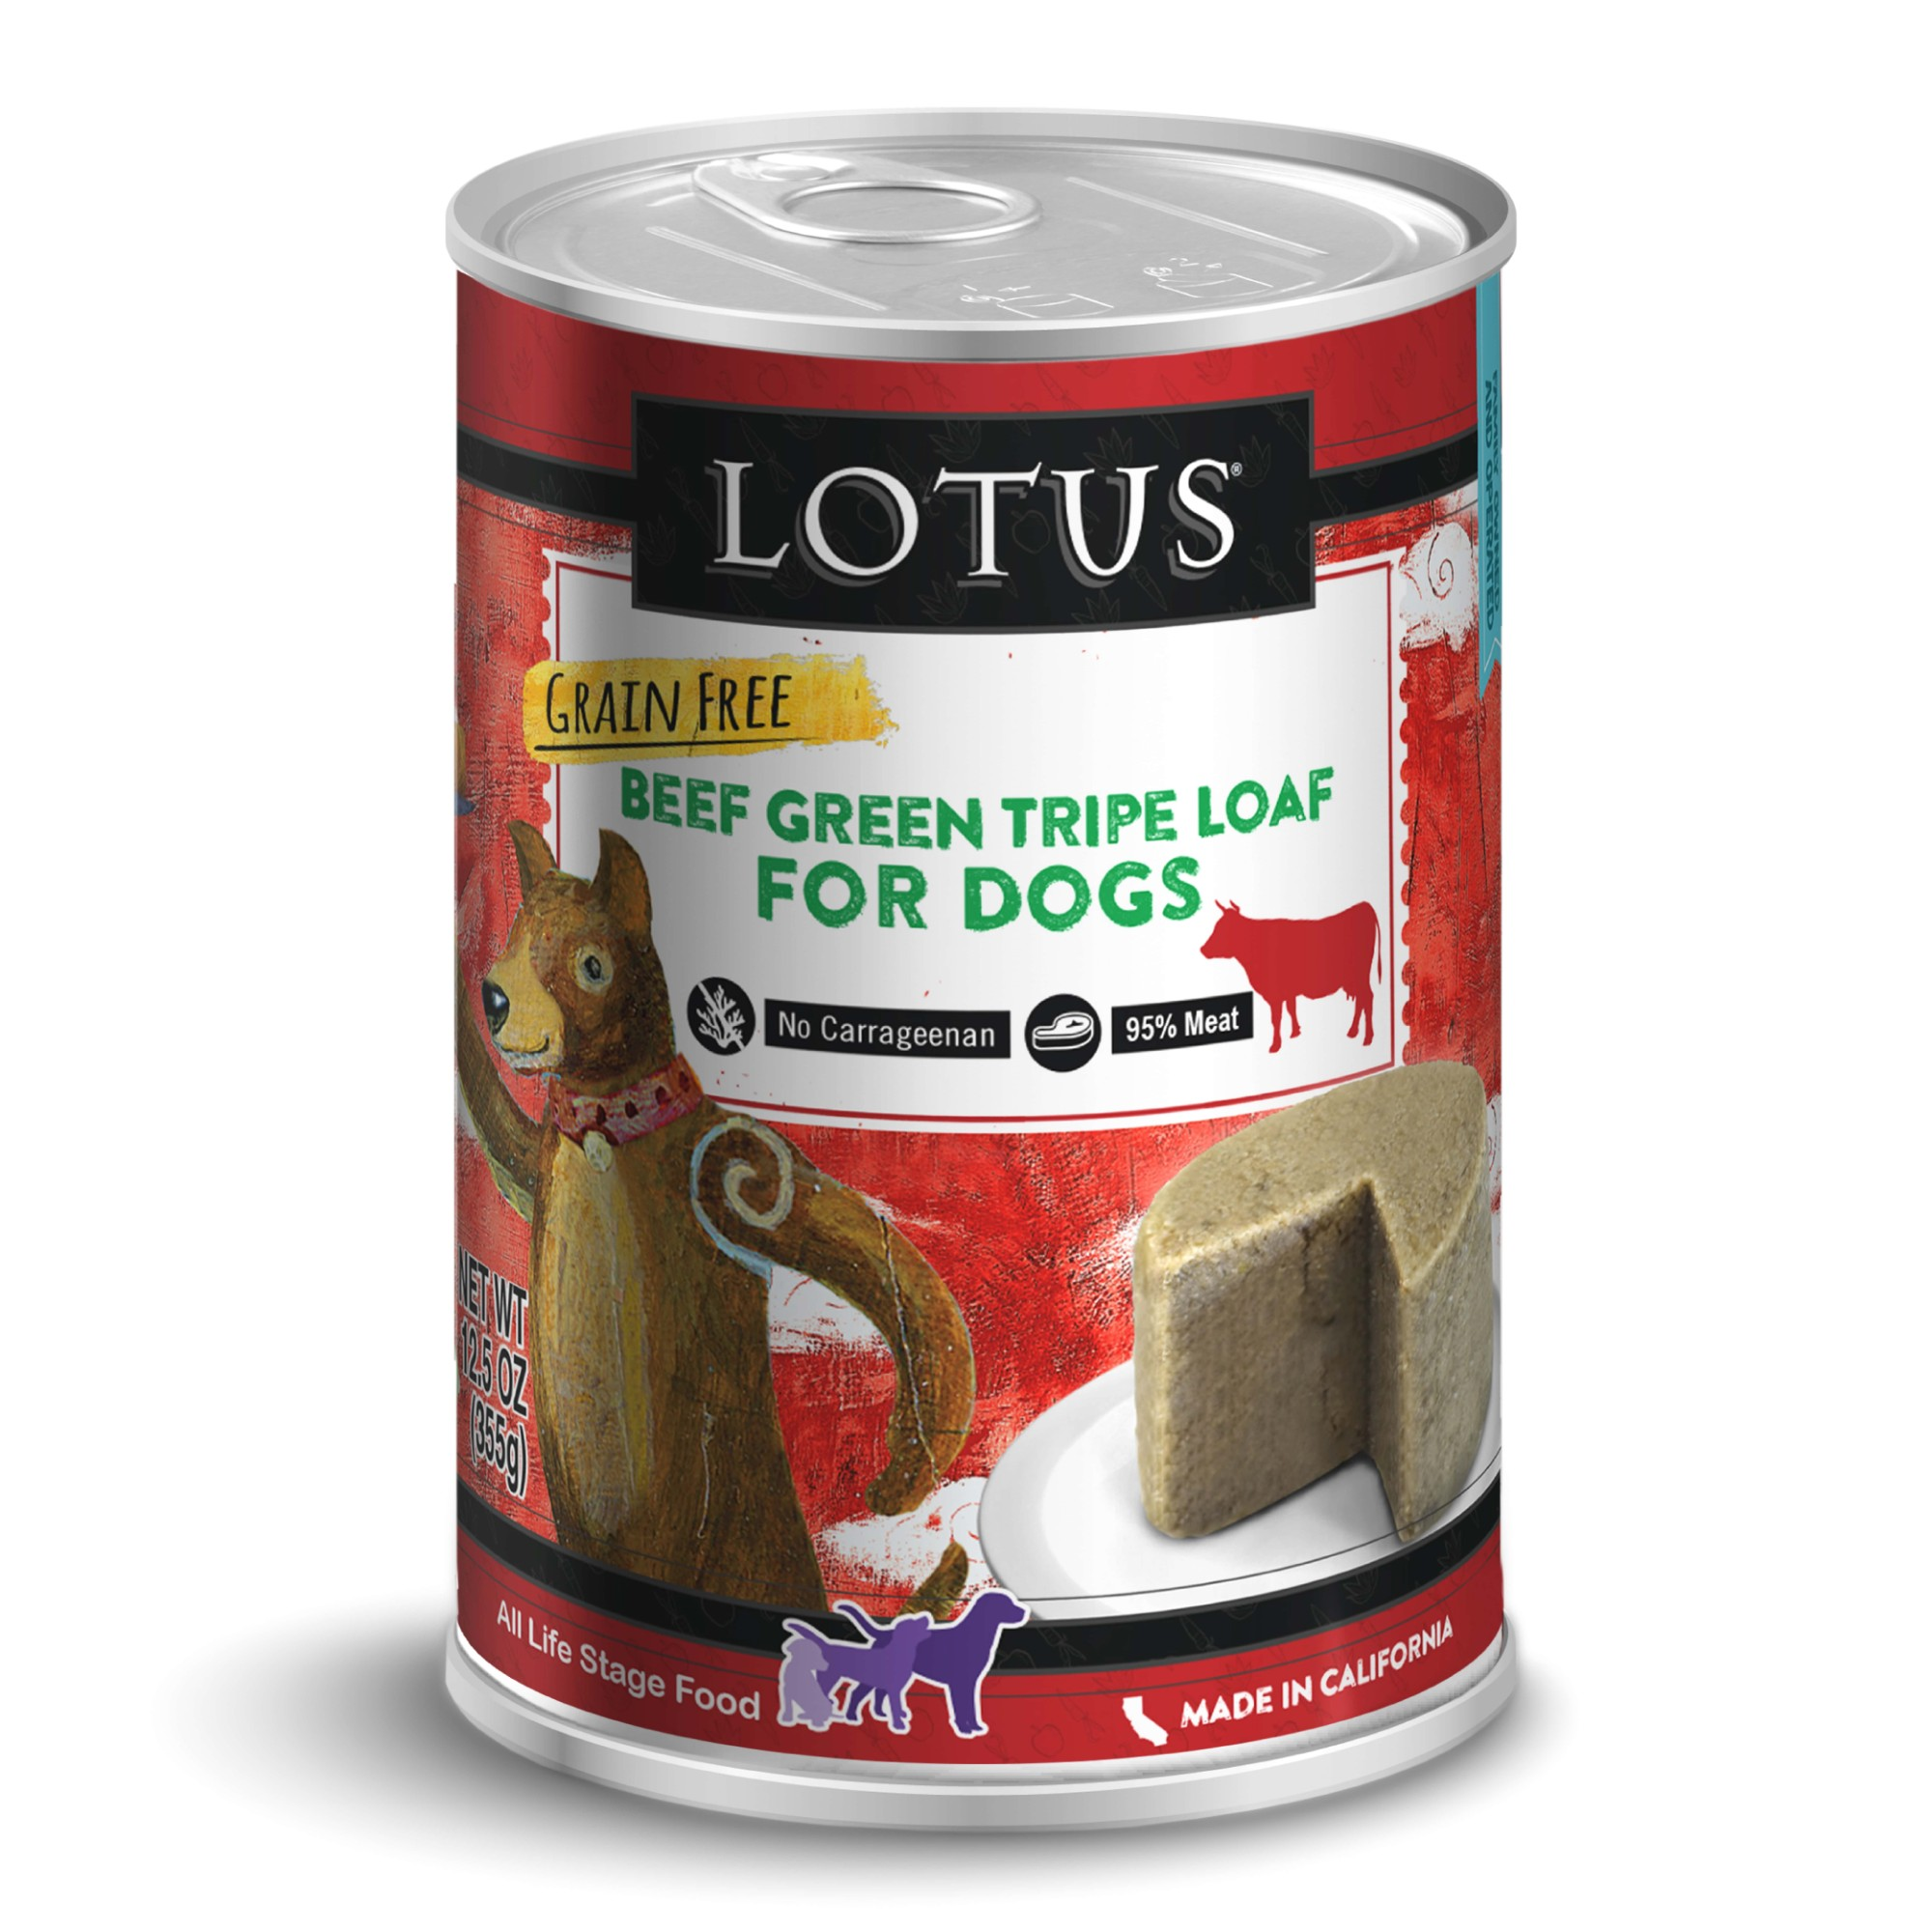 Lotus Beef Green Tripe Loaf Grain-Free Wet Dog Food, 12.5-oz